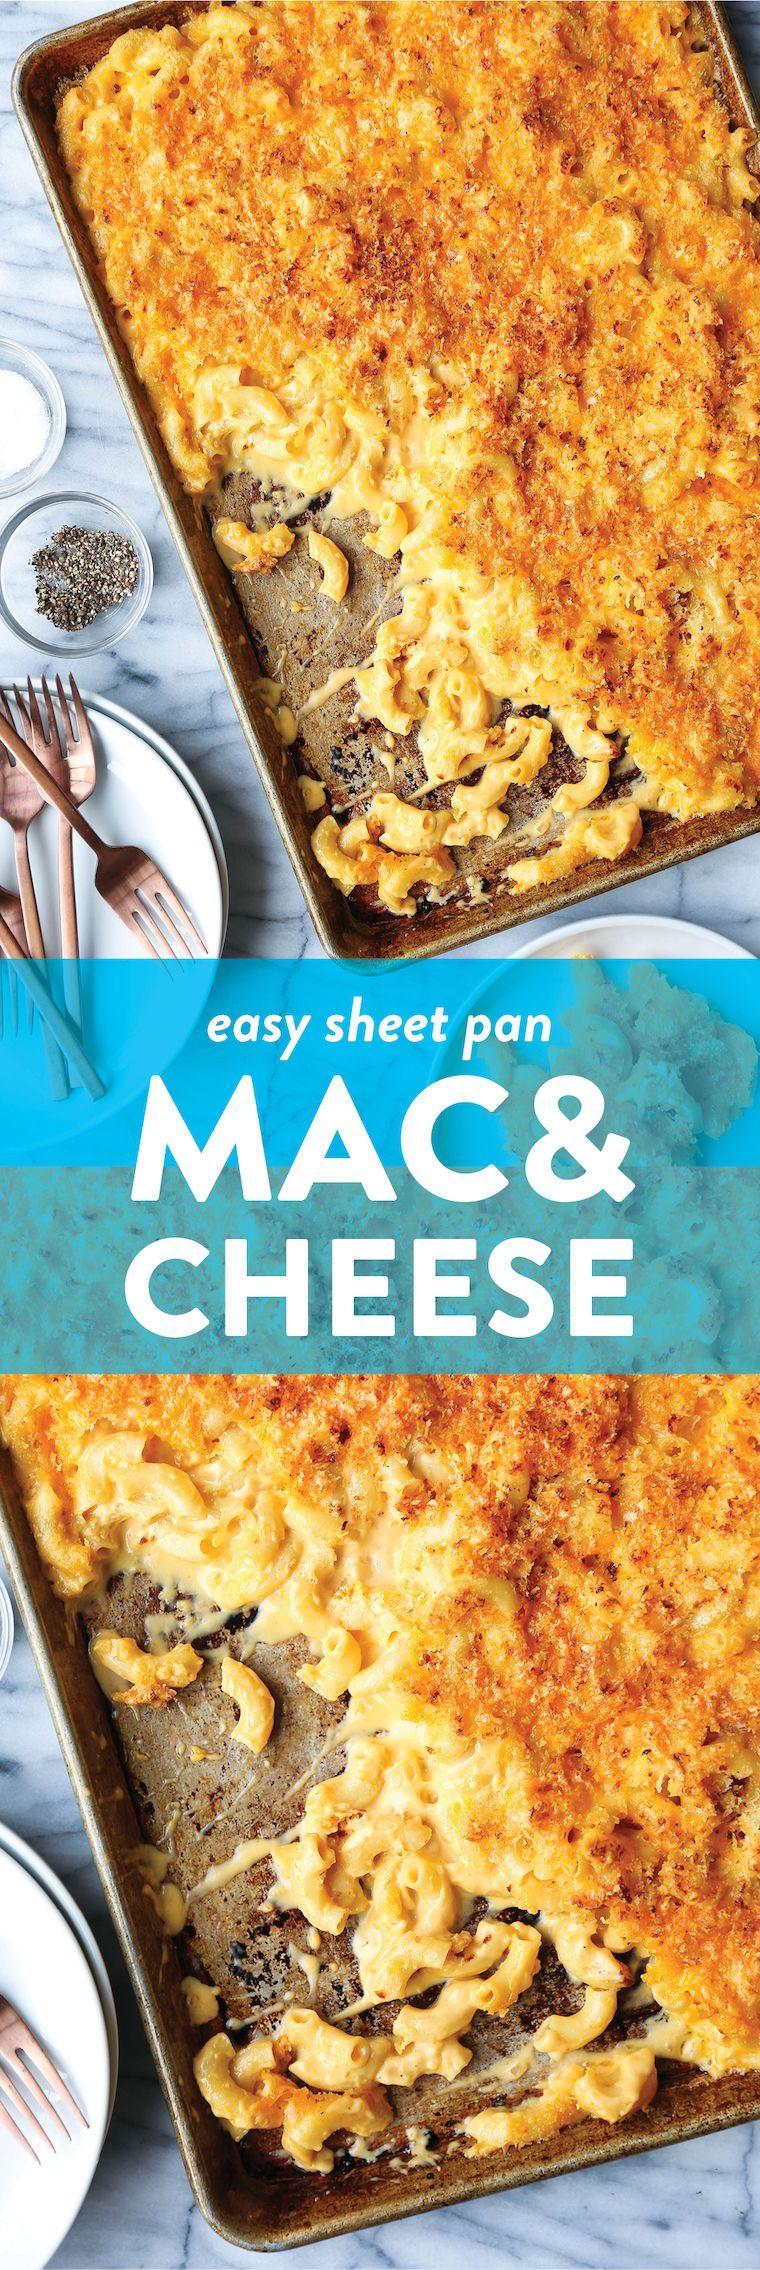 Sheet Pan Mac and Cheese -